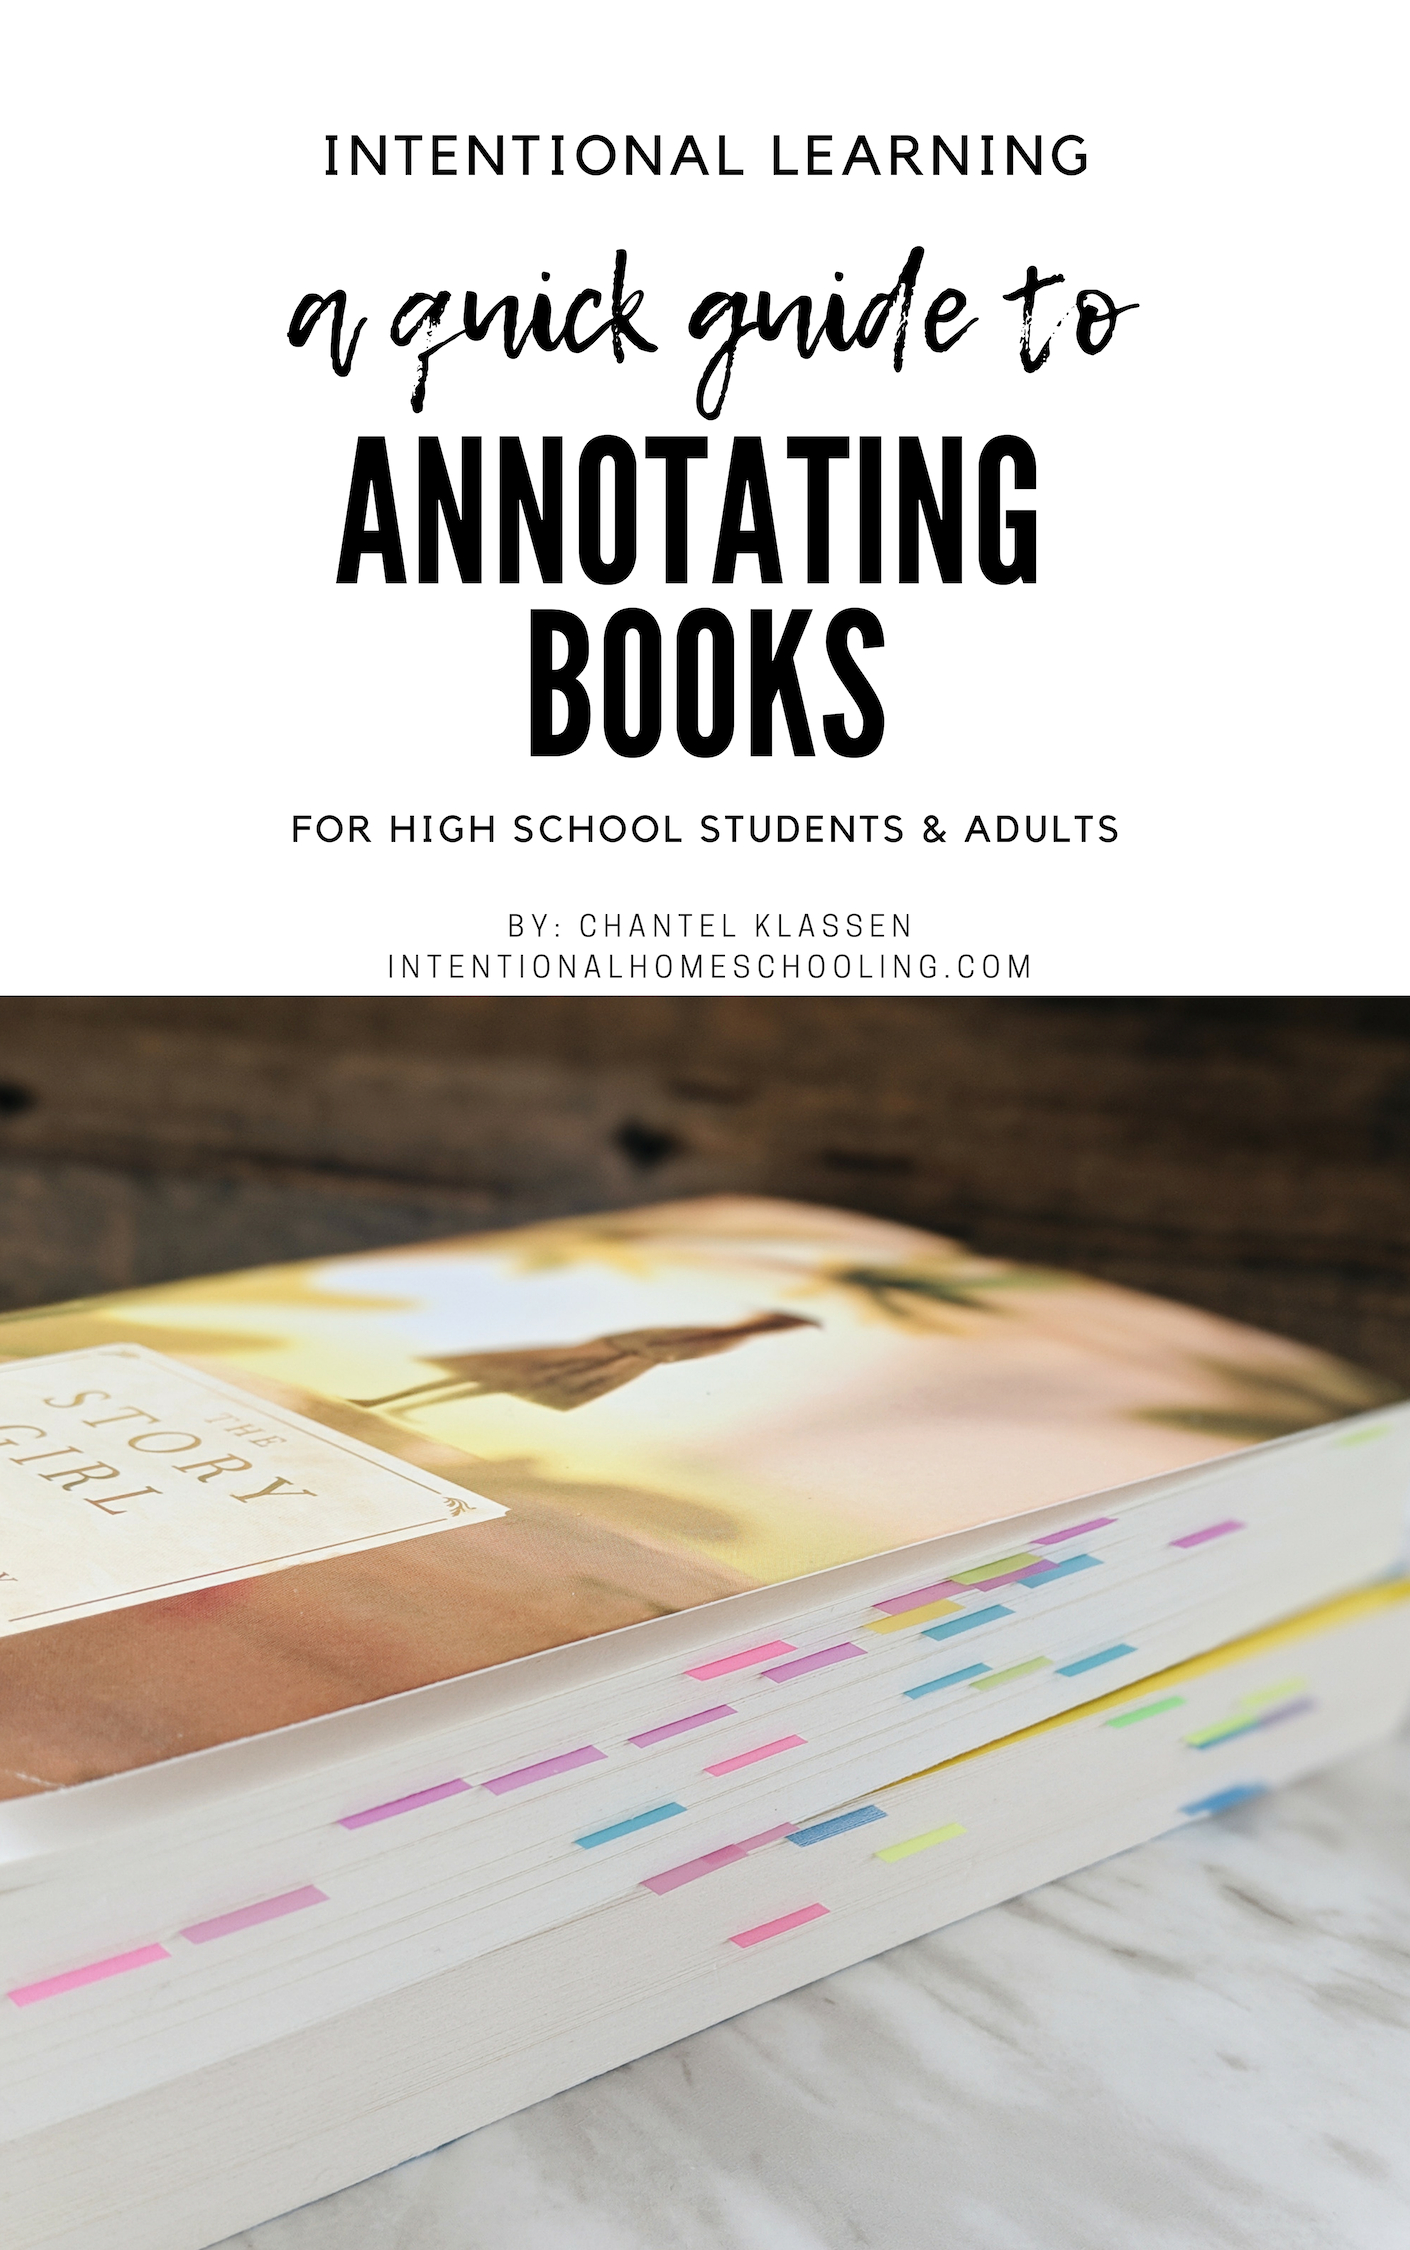 A Guide to Annotating Books - learn how to annotate books and make reading a wonderful experience